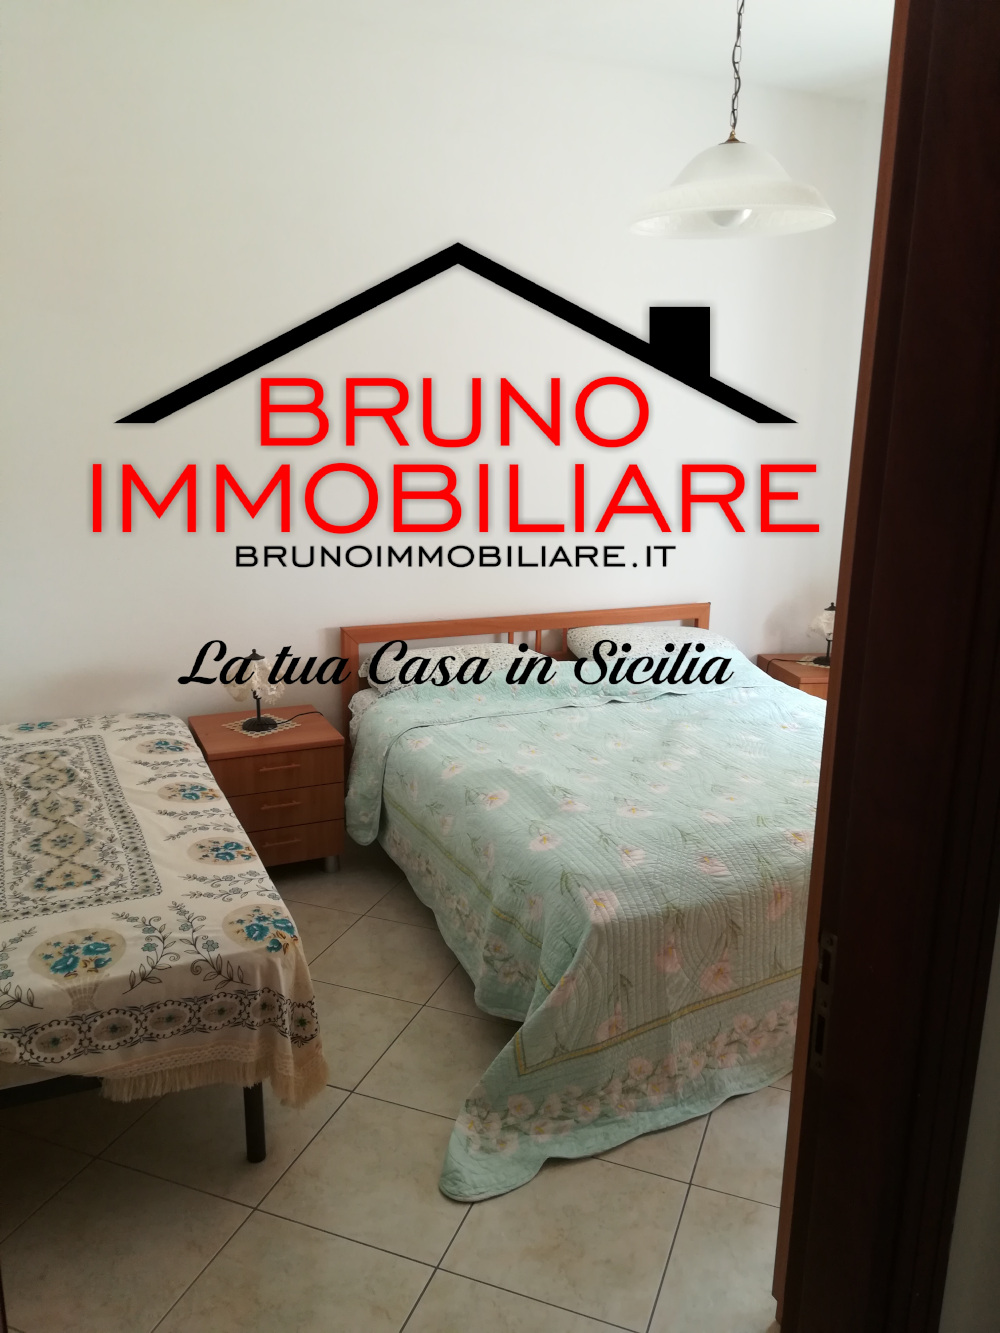 Alcamo Marina (TP), Alcamo, 2 Bedrooms Bedrooms, 2 Rooms Rooms,1 BagnoBathrooms,Appartamento,Casa Vacanze,1074